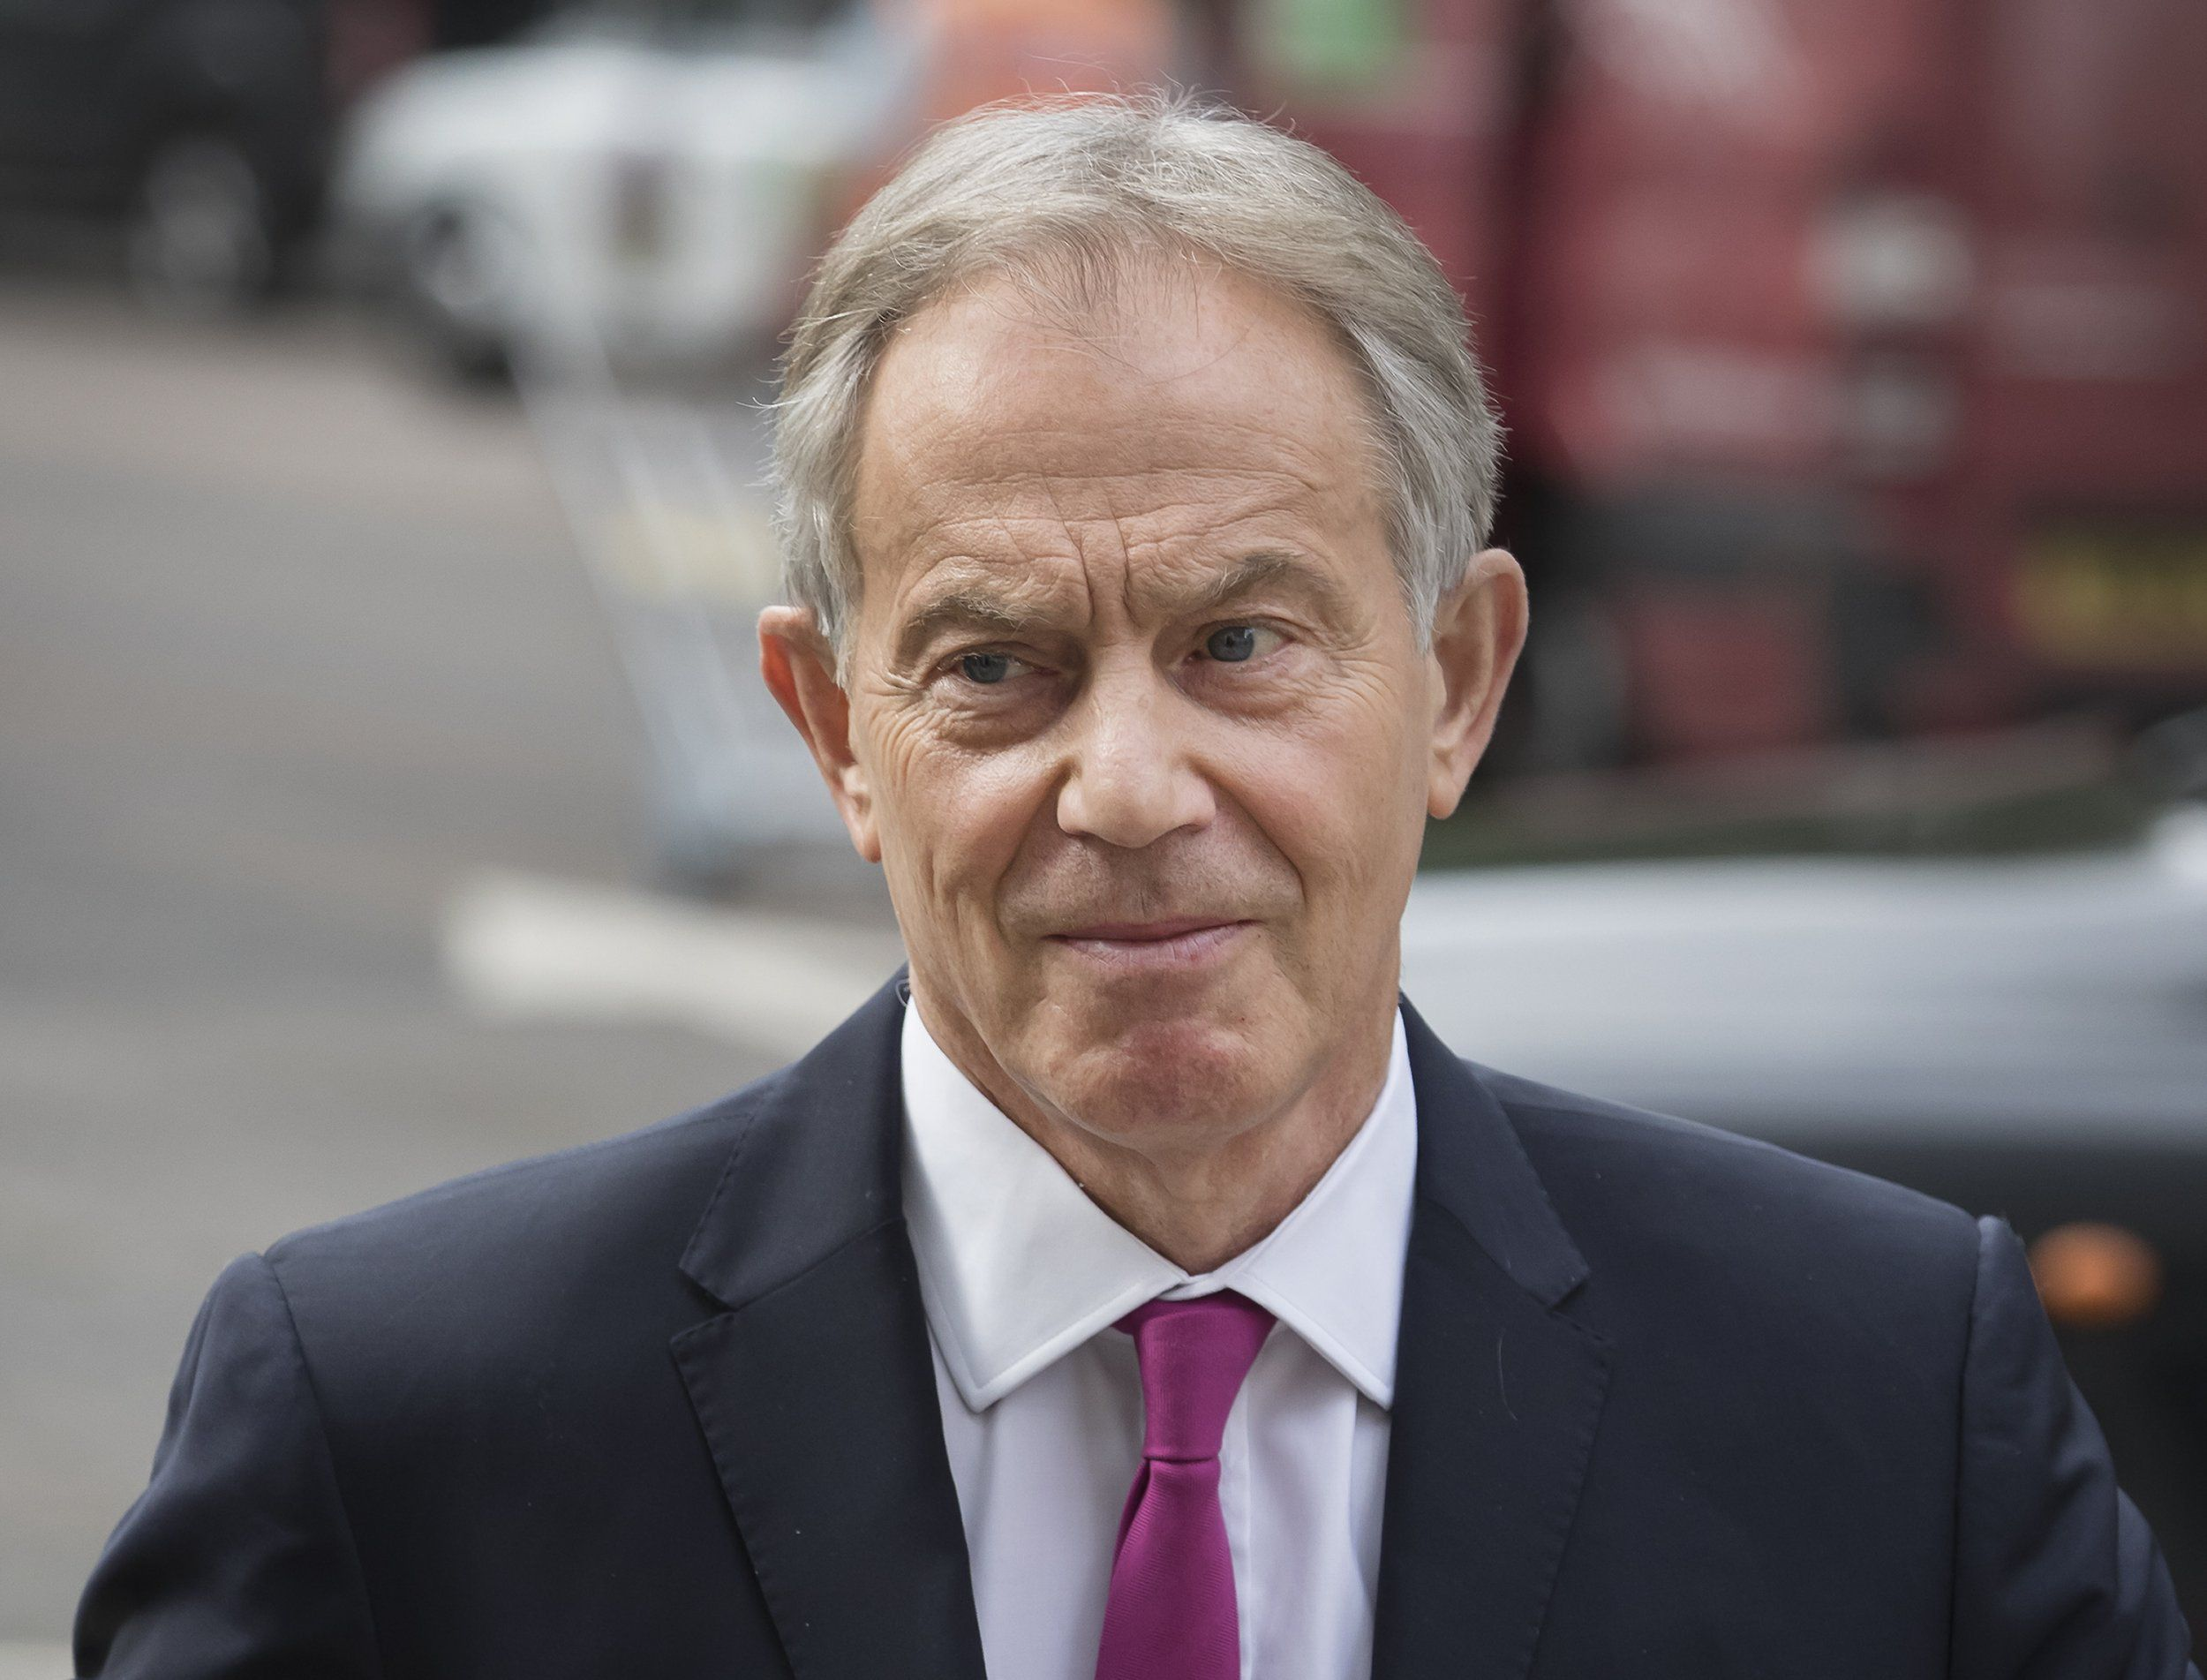 Tony Blair's police protection costs taxpayers millions, report claims